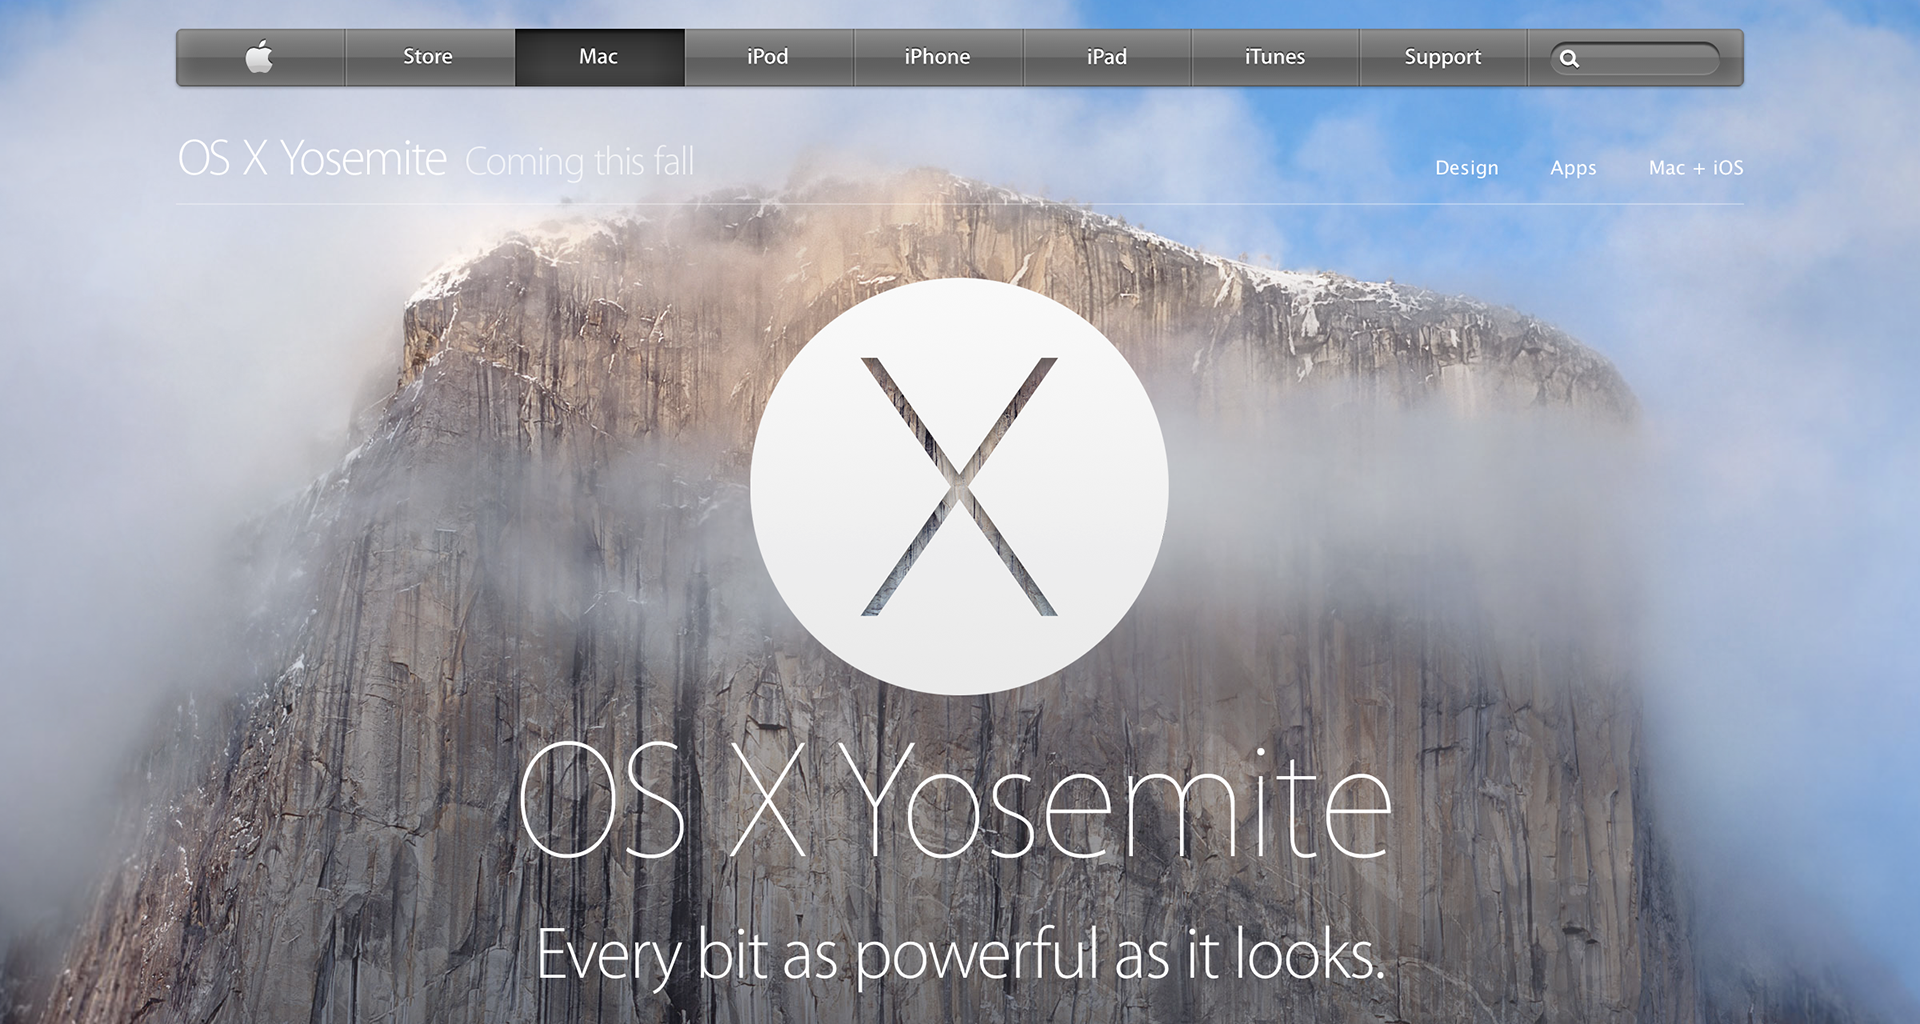 Apple's Yosemite website: startlingly thin text and a wall of granite seen through a haze.